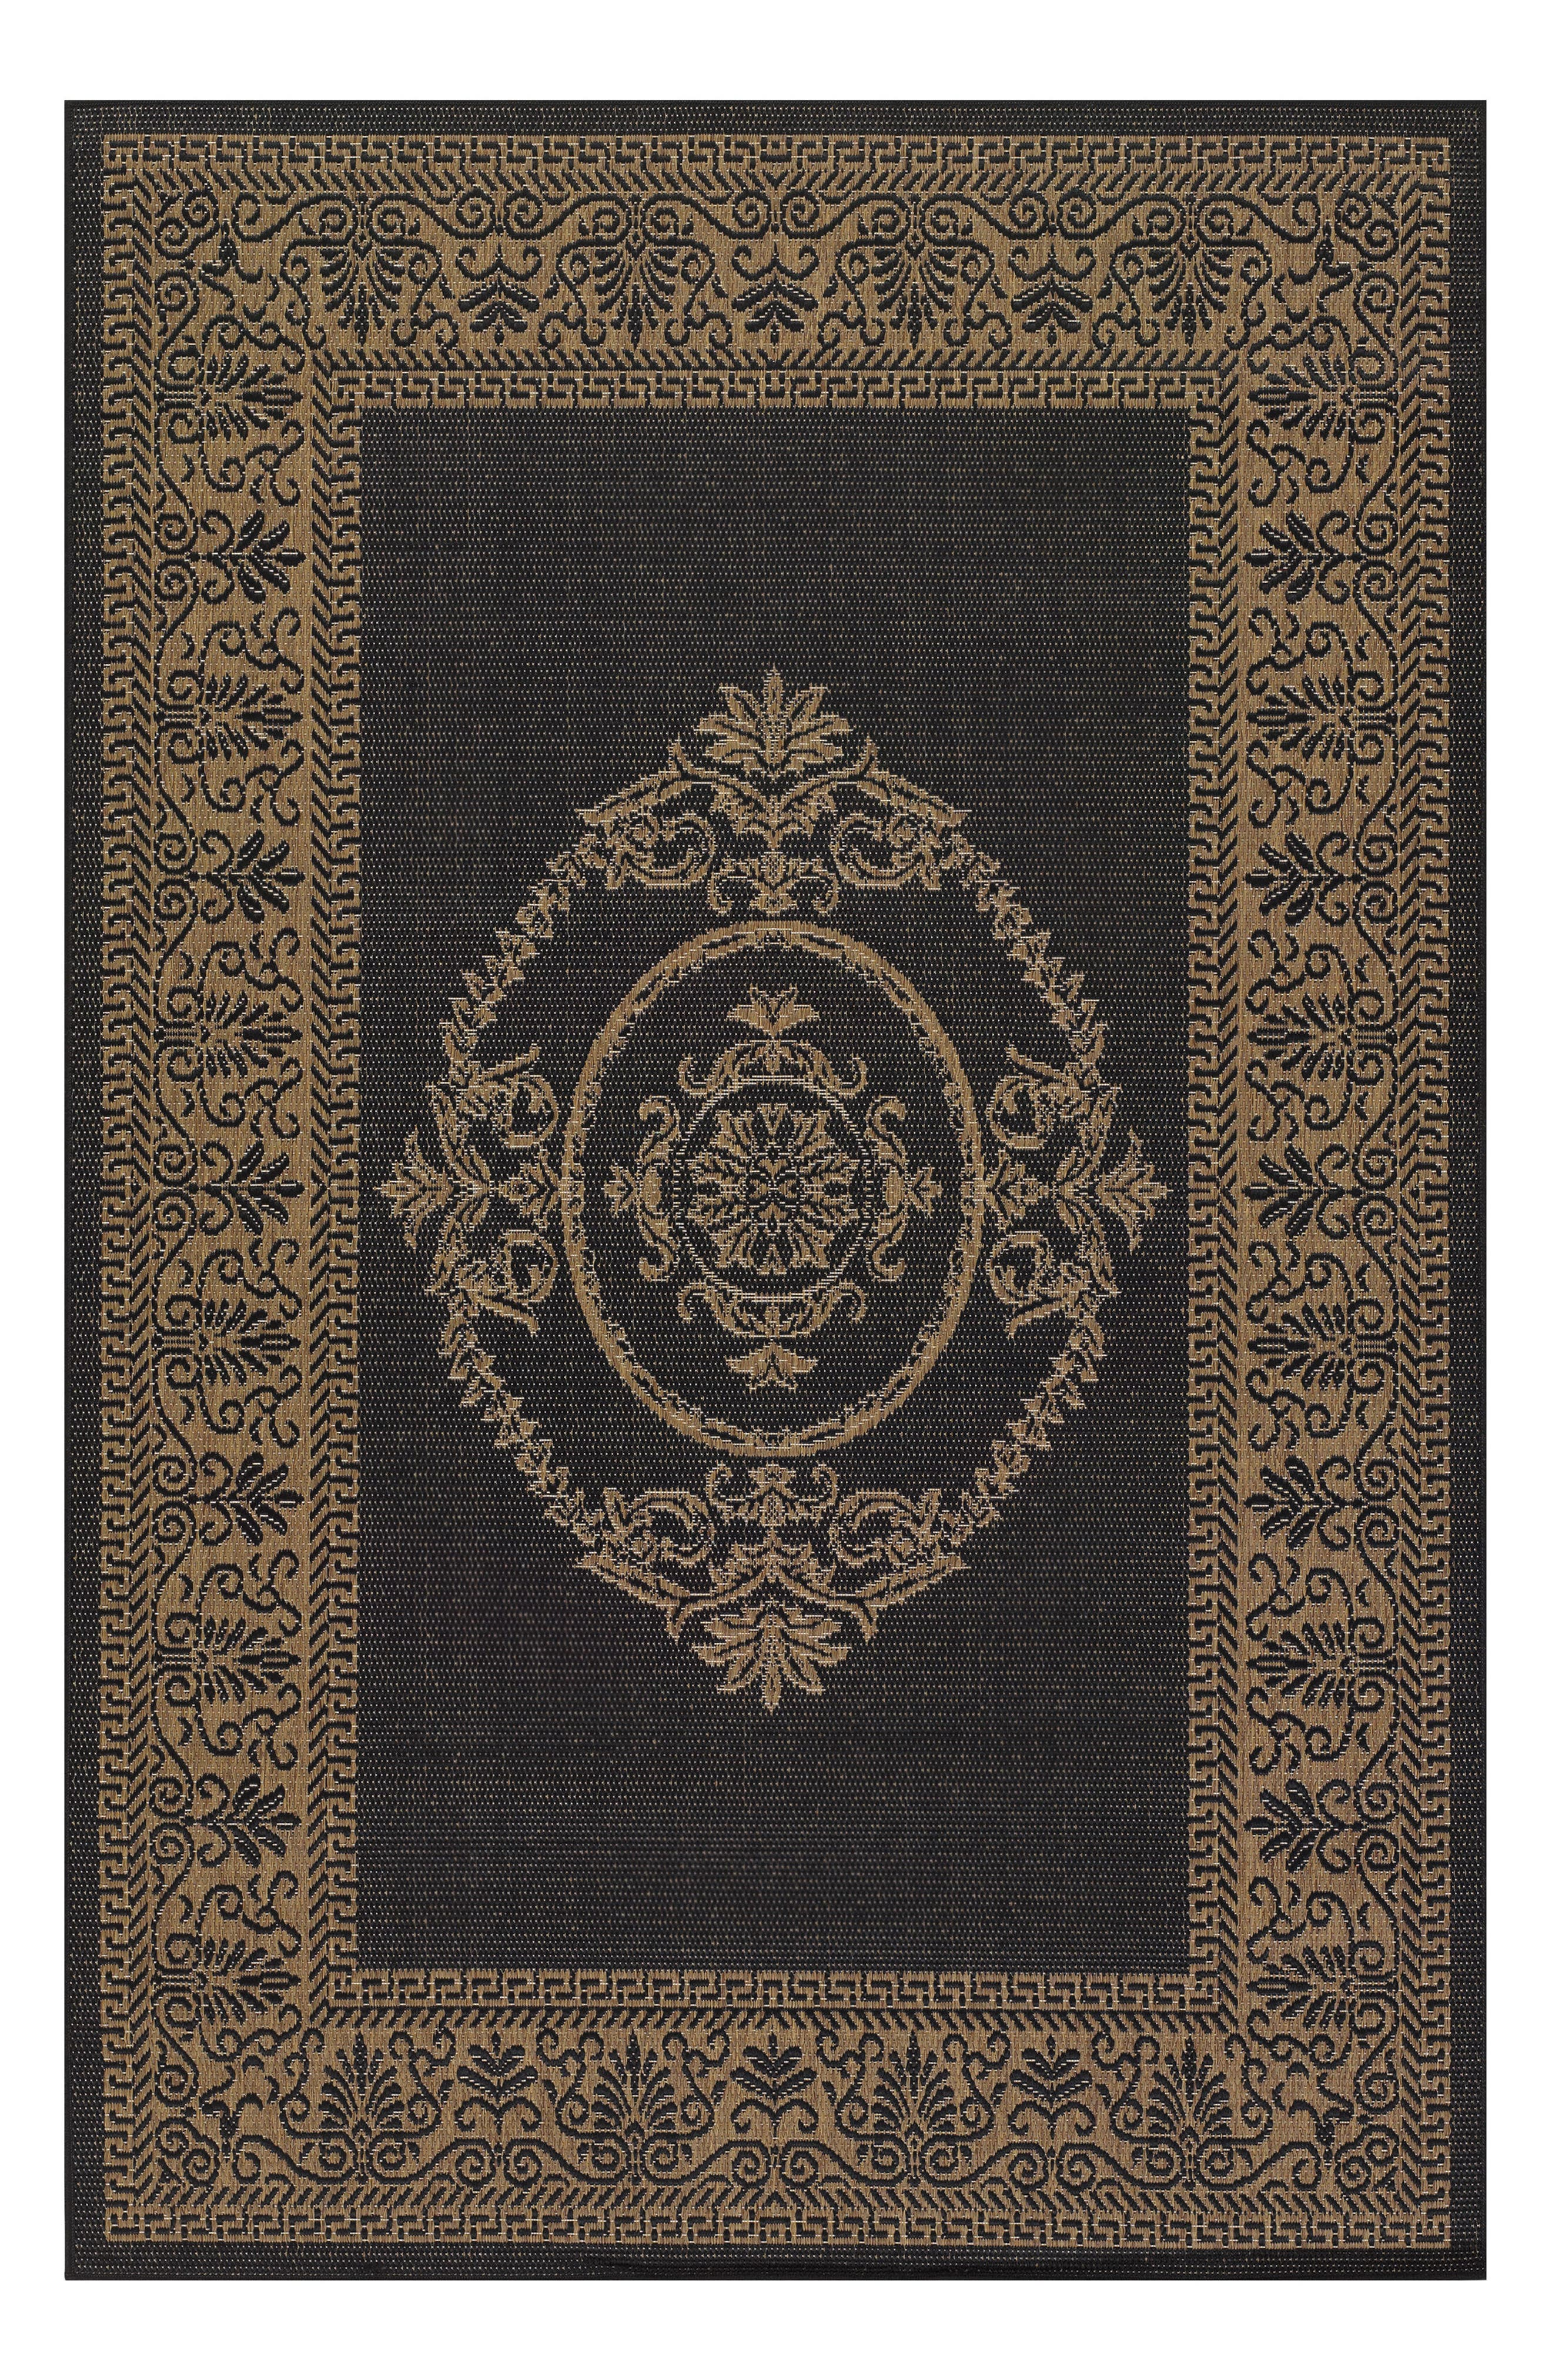 Antique Medallion Indoor/Outdoor Rug,                             Main thumbnail 1, color,                             001